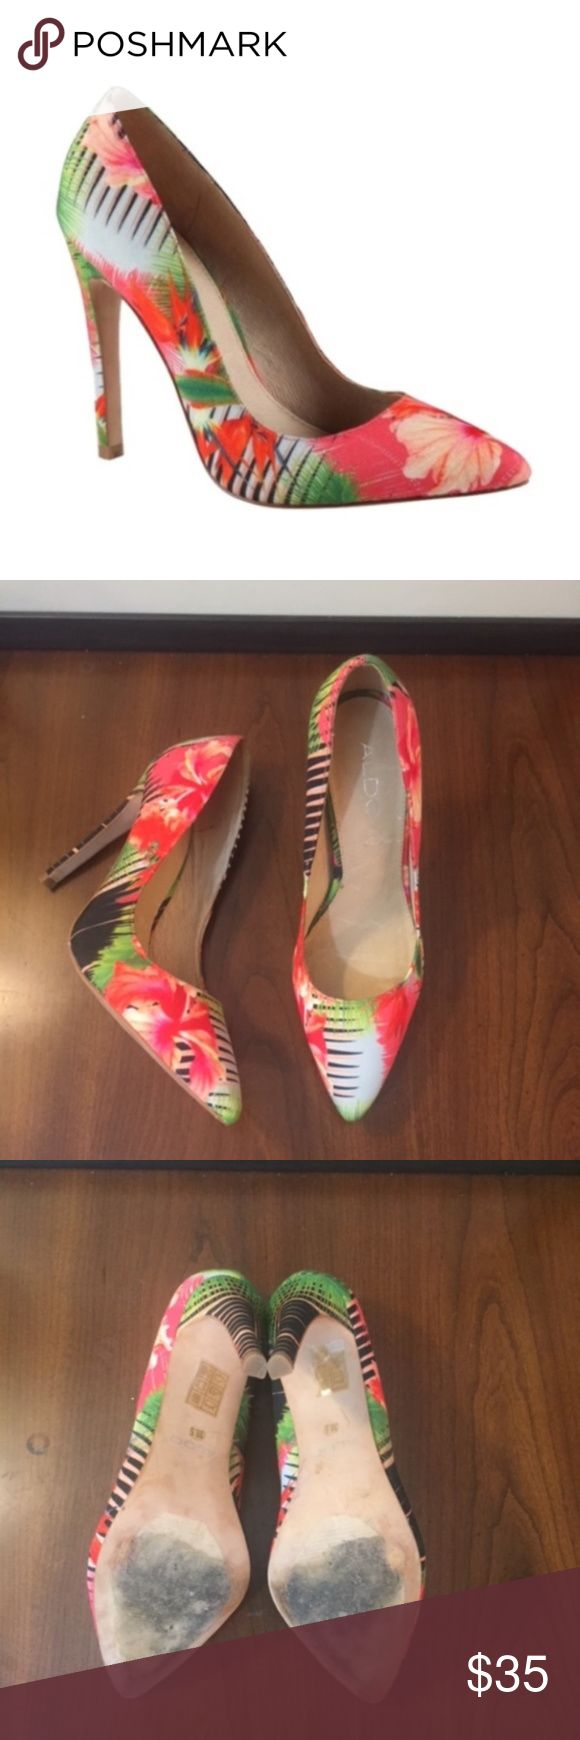 """EUC Aldo Ybuvia Floral Heels (8) Women's Aldo Ybuvia Floral Heels.  Aldo Floral pumps are such a versatile pair, you'll want to make sure to keep them at the front of your closet.  - Fabric upper in black velvet multi - Pointed closed-toe pumps - 4"""" covered heel Aldo Shoes Heels"""